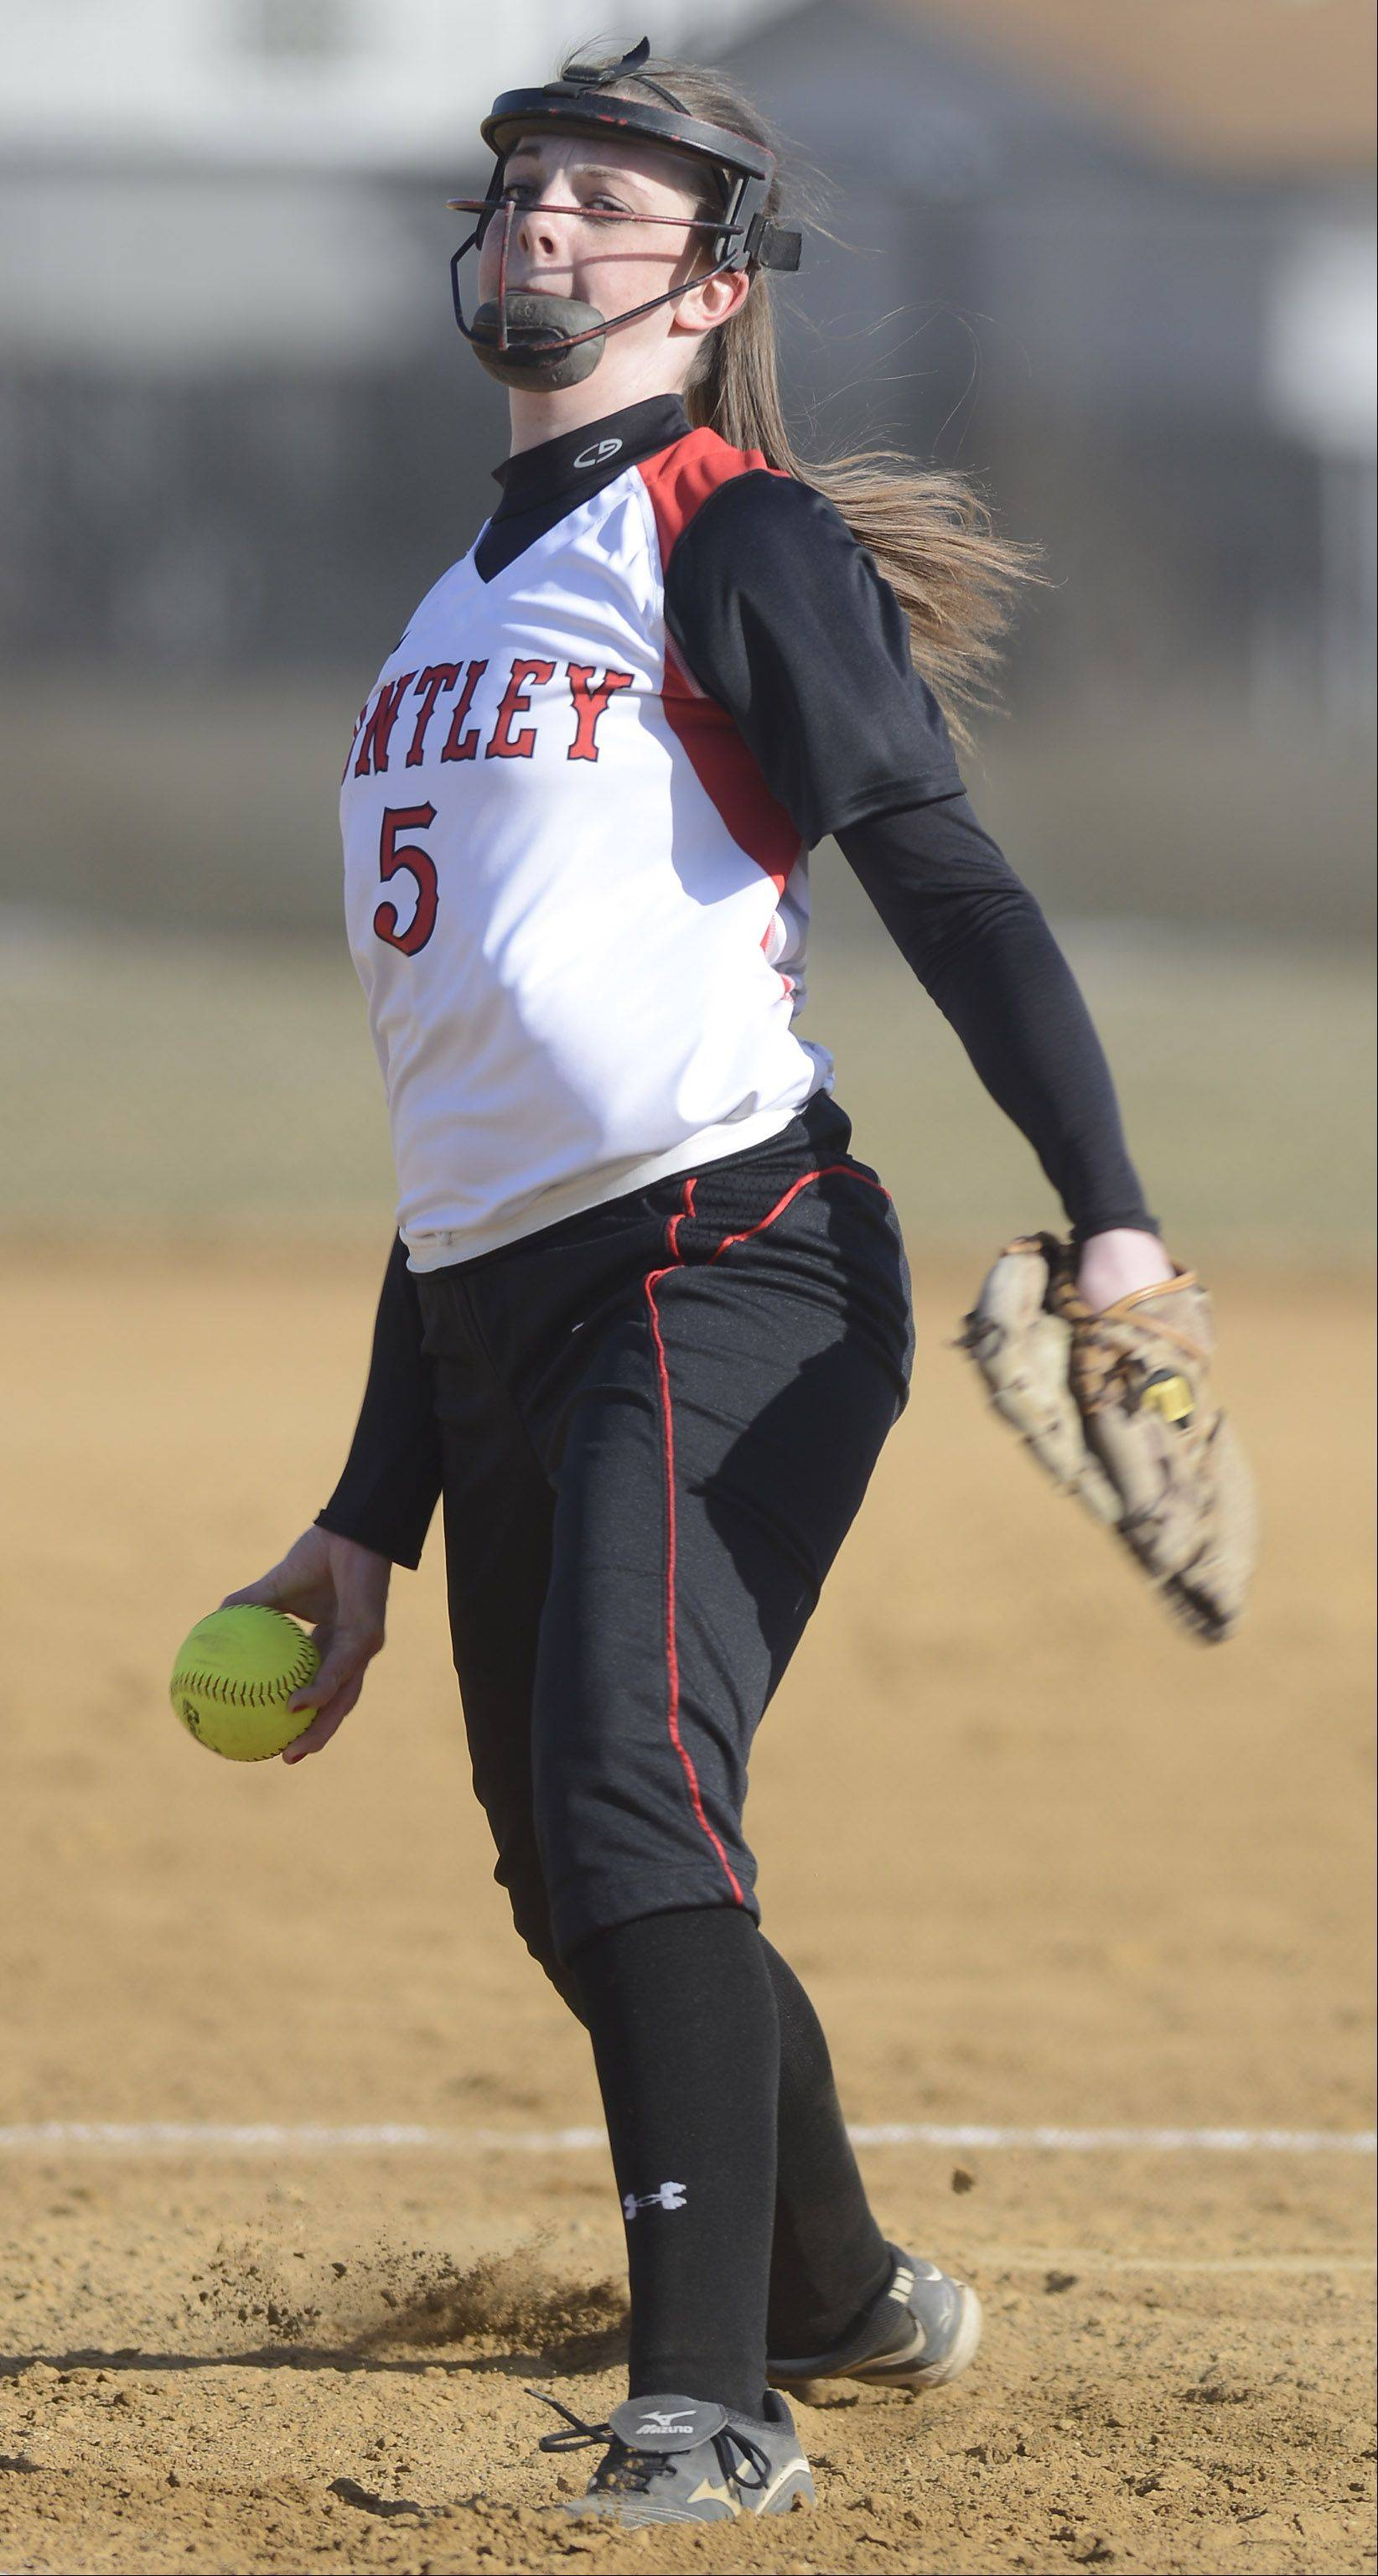 Huntley pitcher Haley Spannraft delivers during Wednesday's game against Rolling Meadows.